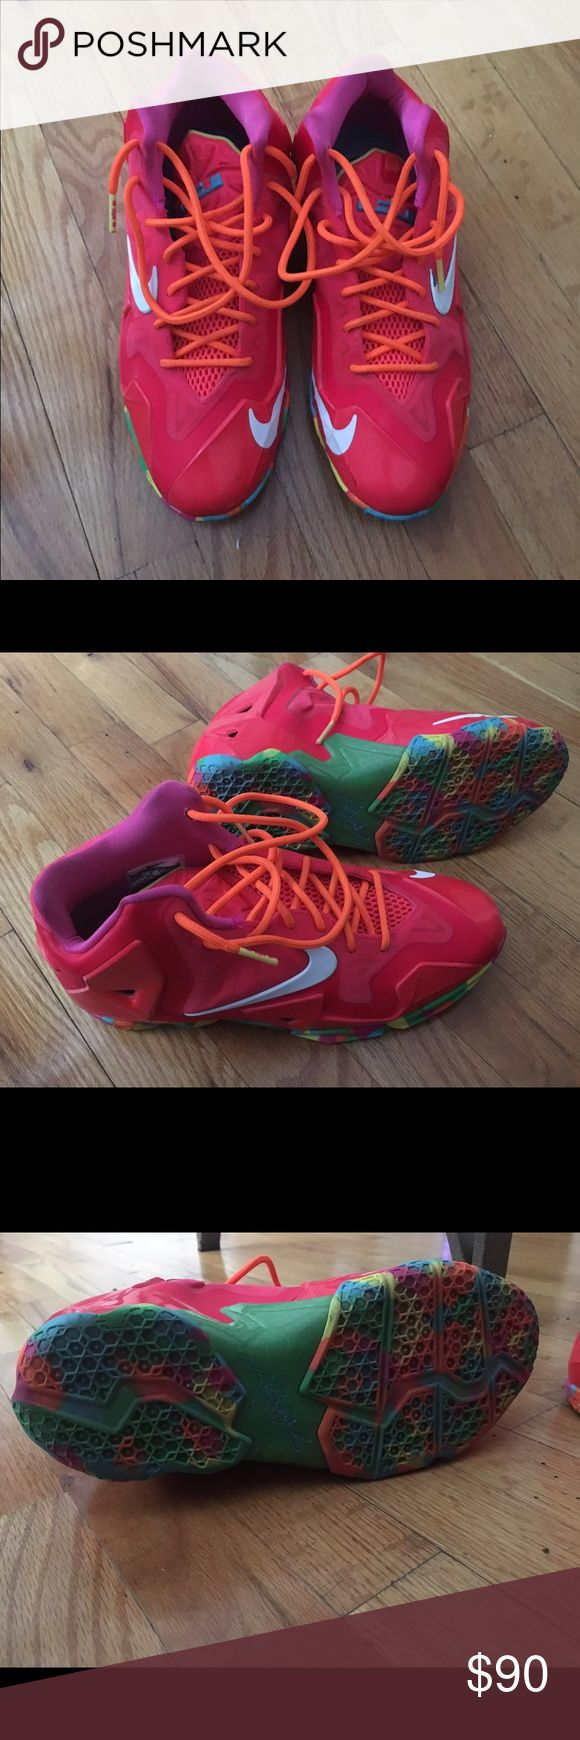 Lebron Fruity Pebbles size 7 Youth Lightly worn. Great condition. Small mark on left shoe ( pictured in last photo ) missing inner sole. PRICE NEGOTIABLE. Please make an offer Nike Shoes Sneakers